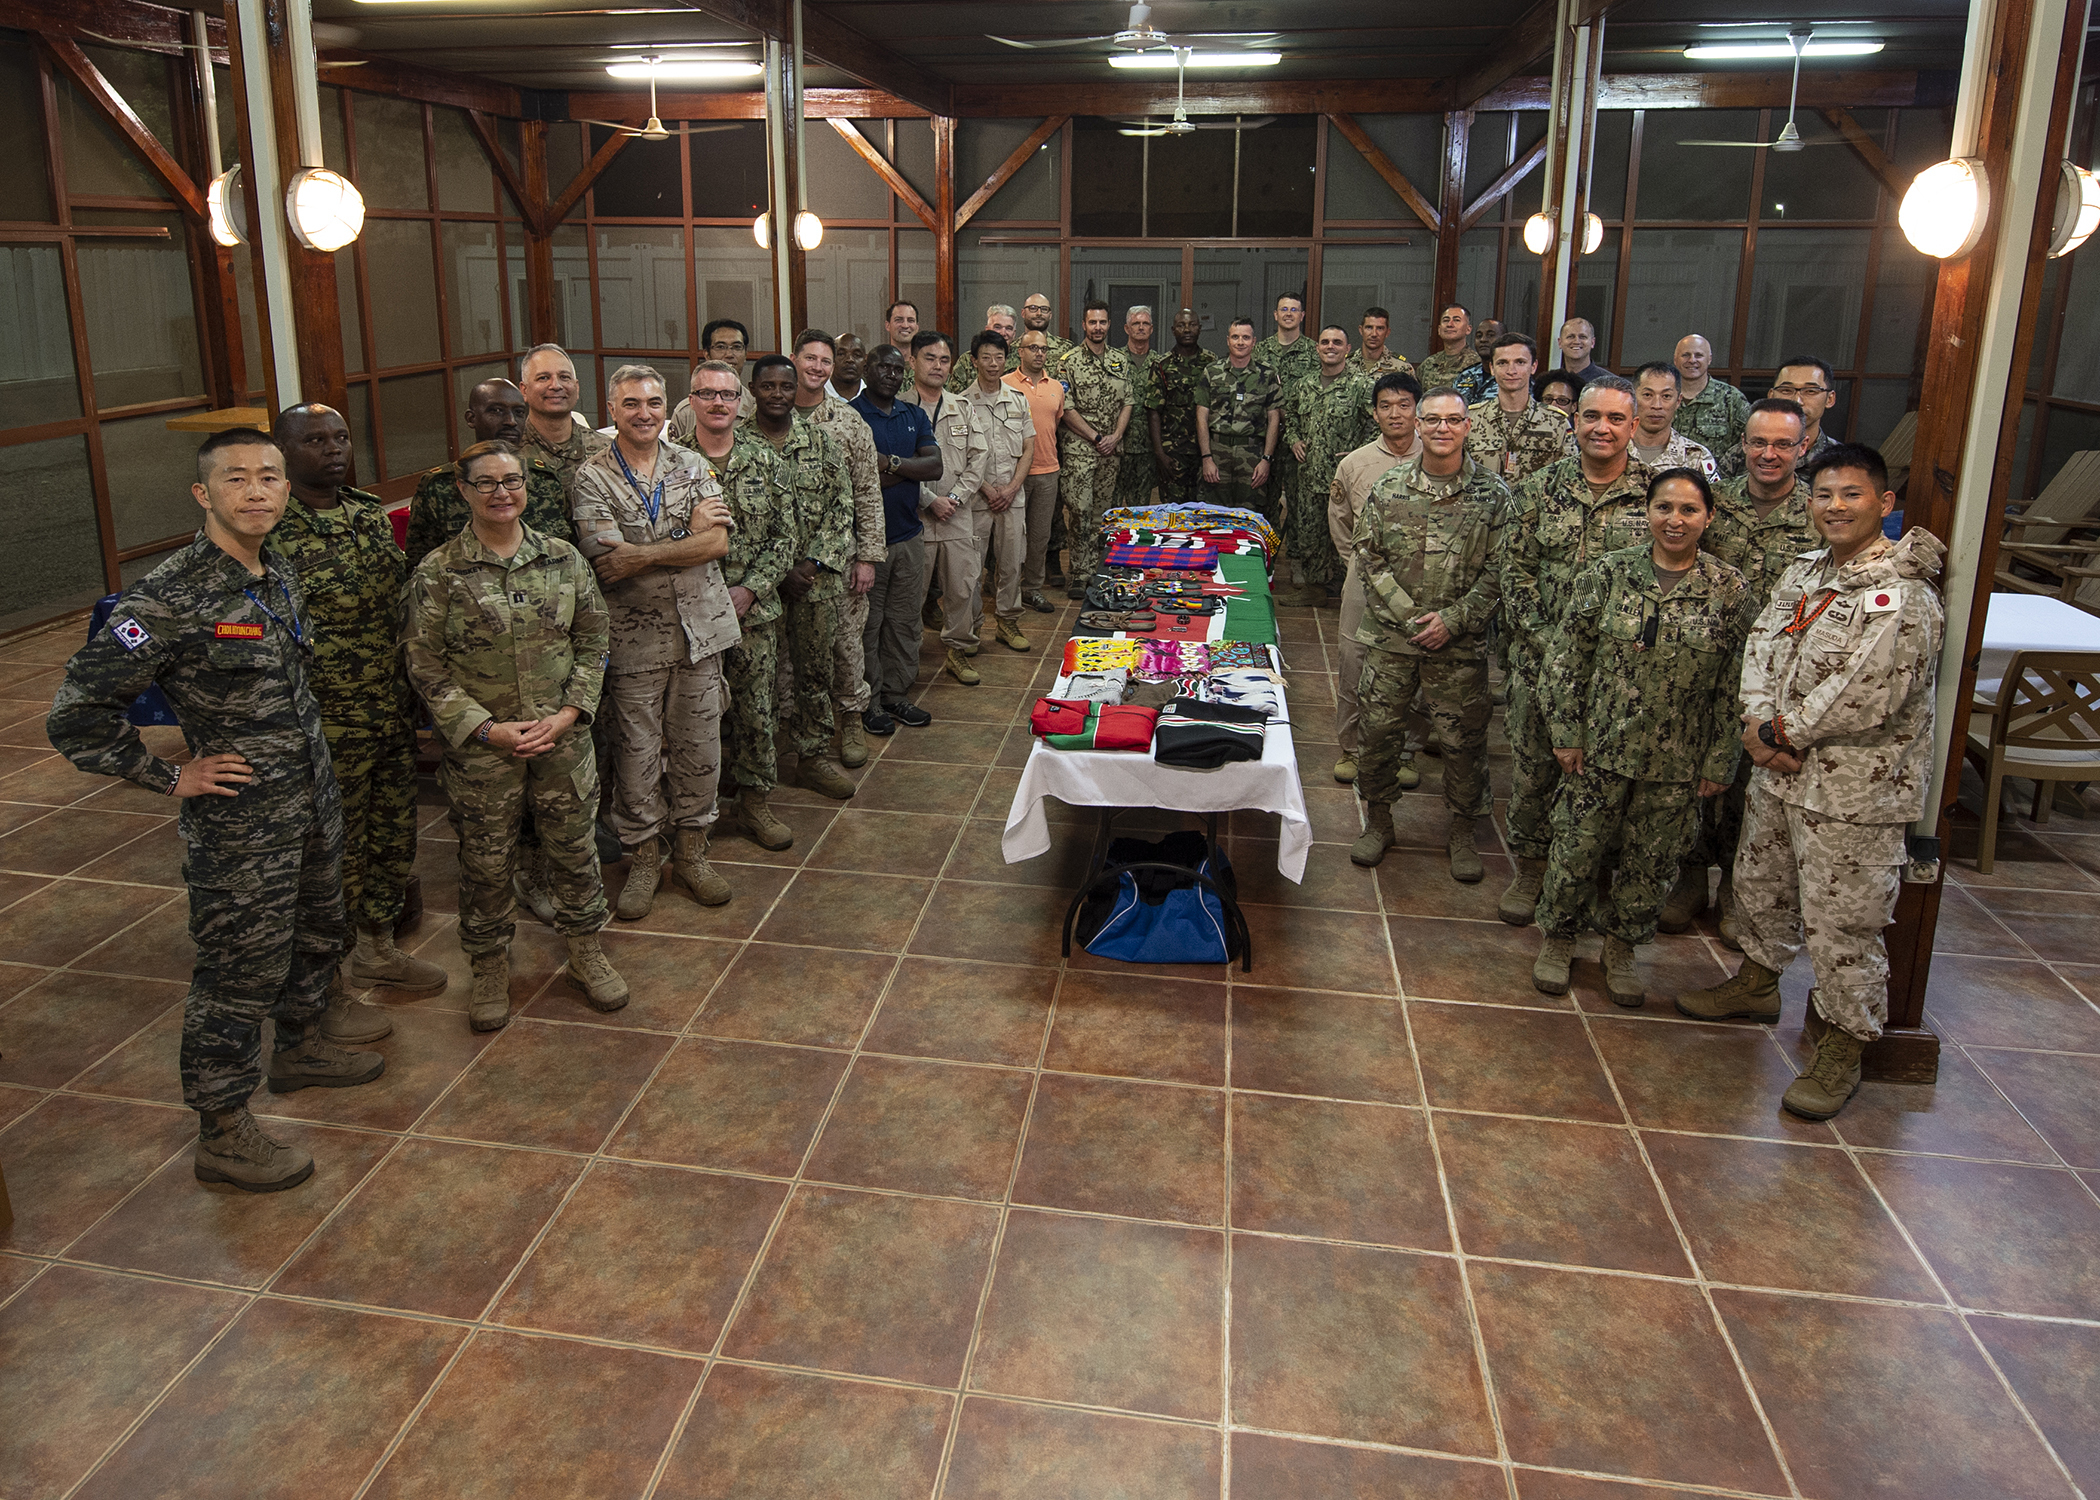 Attendees gather for a group photo at a cultural exchange event led by Kenya Defence Force Lt. Col. Victor Mburu, a foreign liaison officer assigned to Combined Joint Task Force-Horn of Africa (CJTF-HOA), at Camp Lemonnier, Djibouti, March 27, 2019. CJTF-HOA holds monthly exchange events with multinational military partners affiliated with Camp Lemonnier to strengthen alliances and attract new partners in the combined joint military environment. (U.S. Air Force photo by Tech. Sgt. Shawn Nickel)